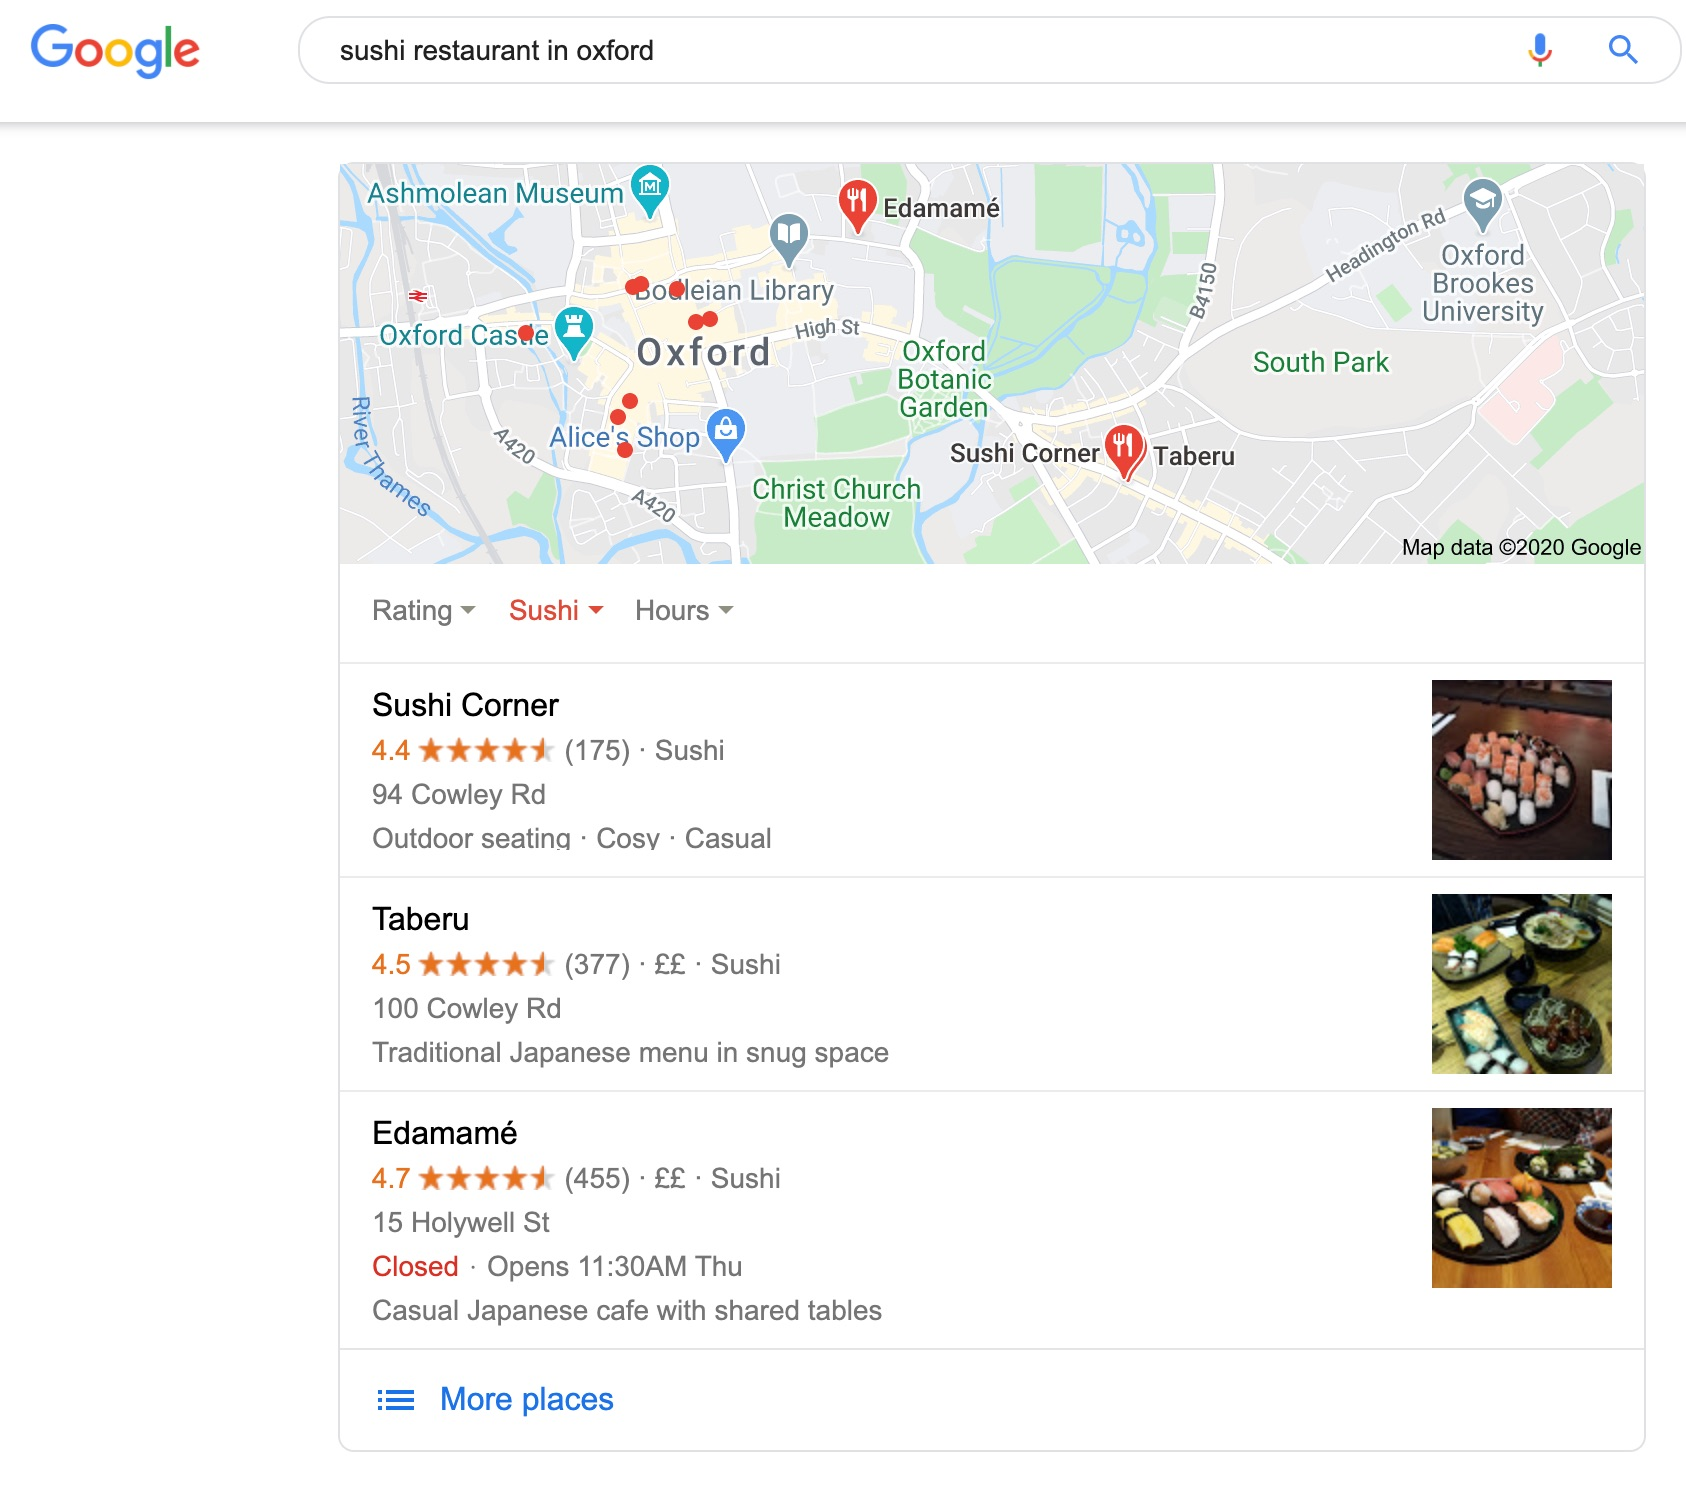 Google local search results